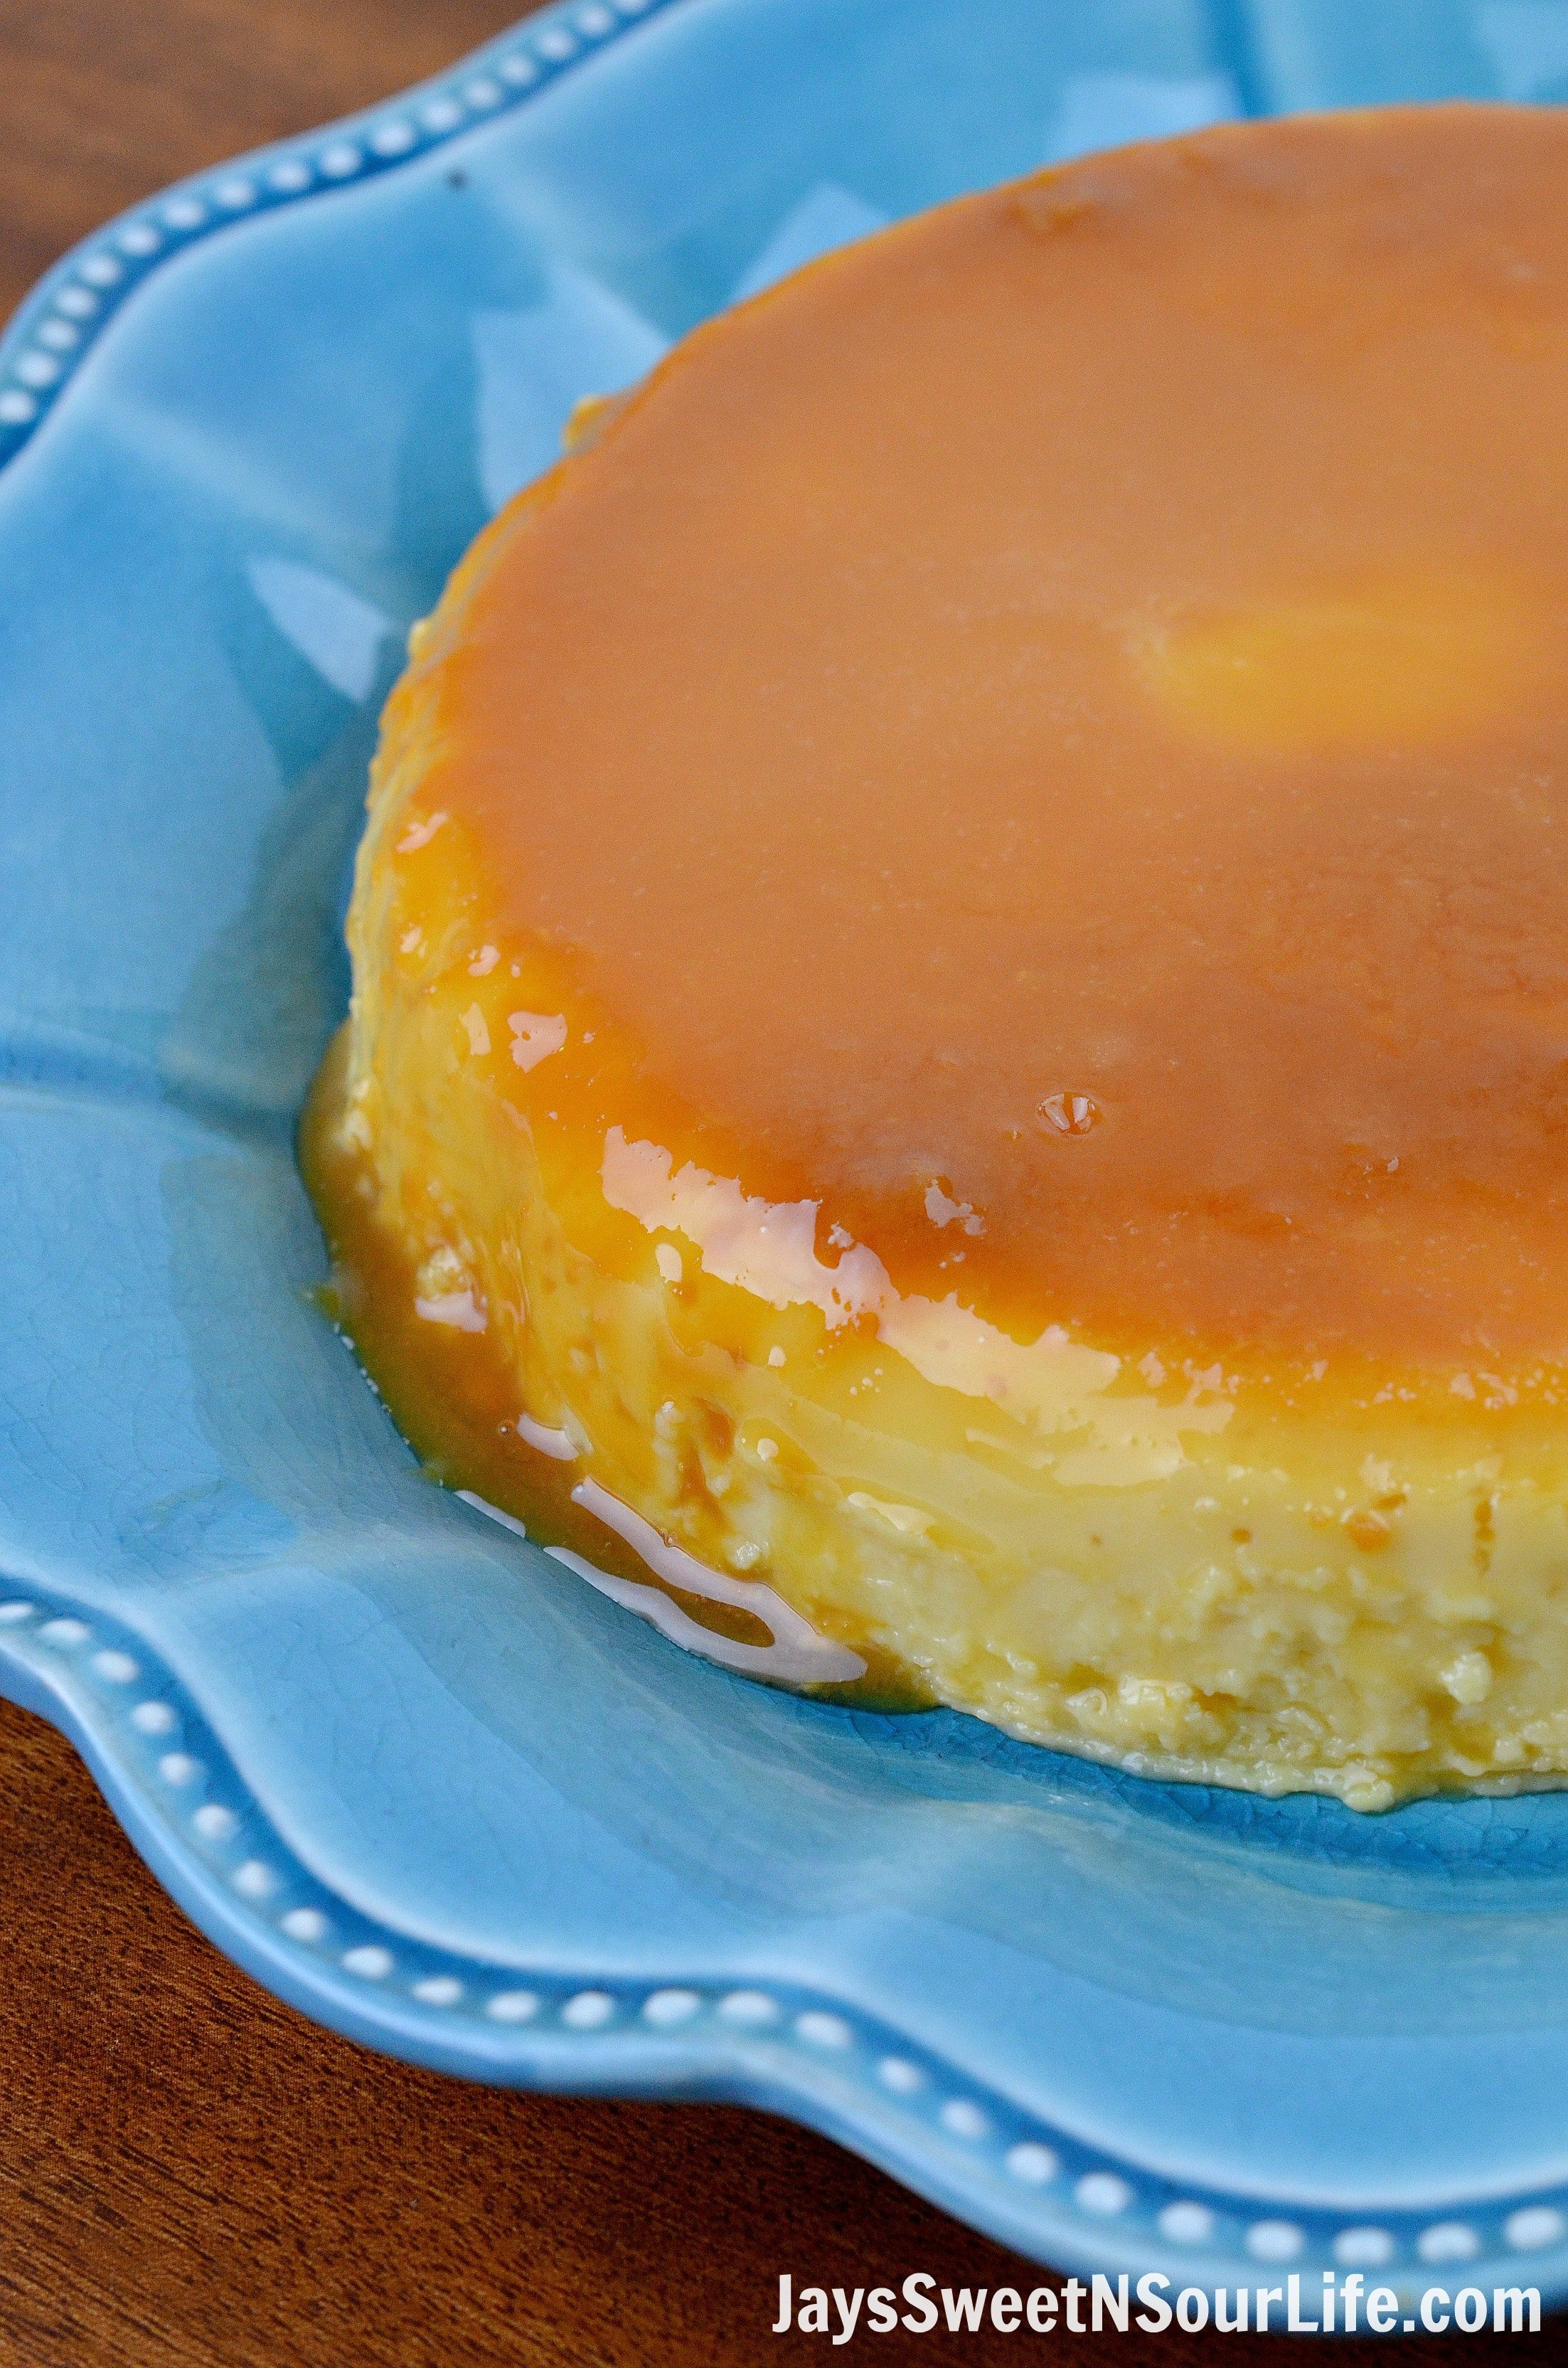 Instant Pot Filipino Leche Flan. Try my stress-free Instant Pot Filipino Leche Flan Recipe. This Filipino version is made with eggs and milk for a custard-like texture, giving you a thick and smooth Leche flan that comes topped with homemade caramel sauce.